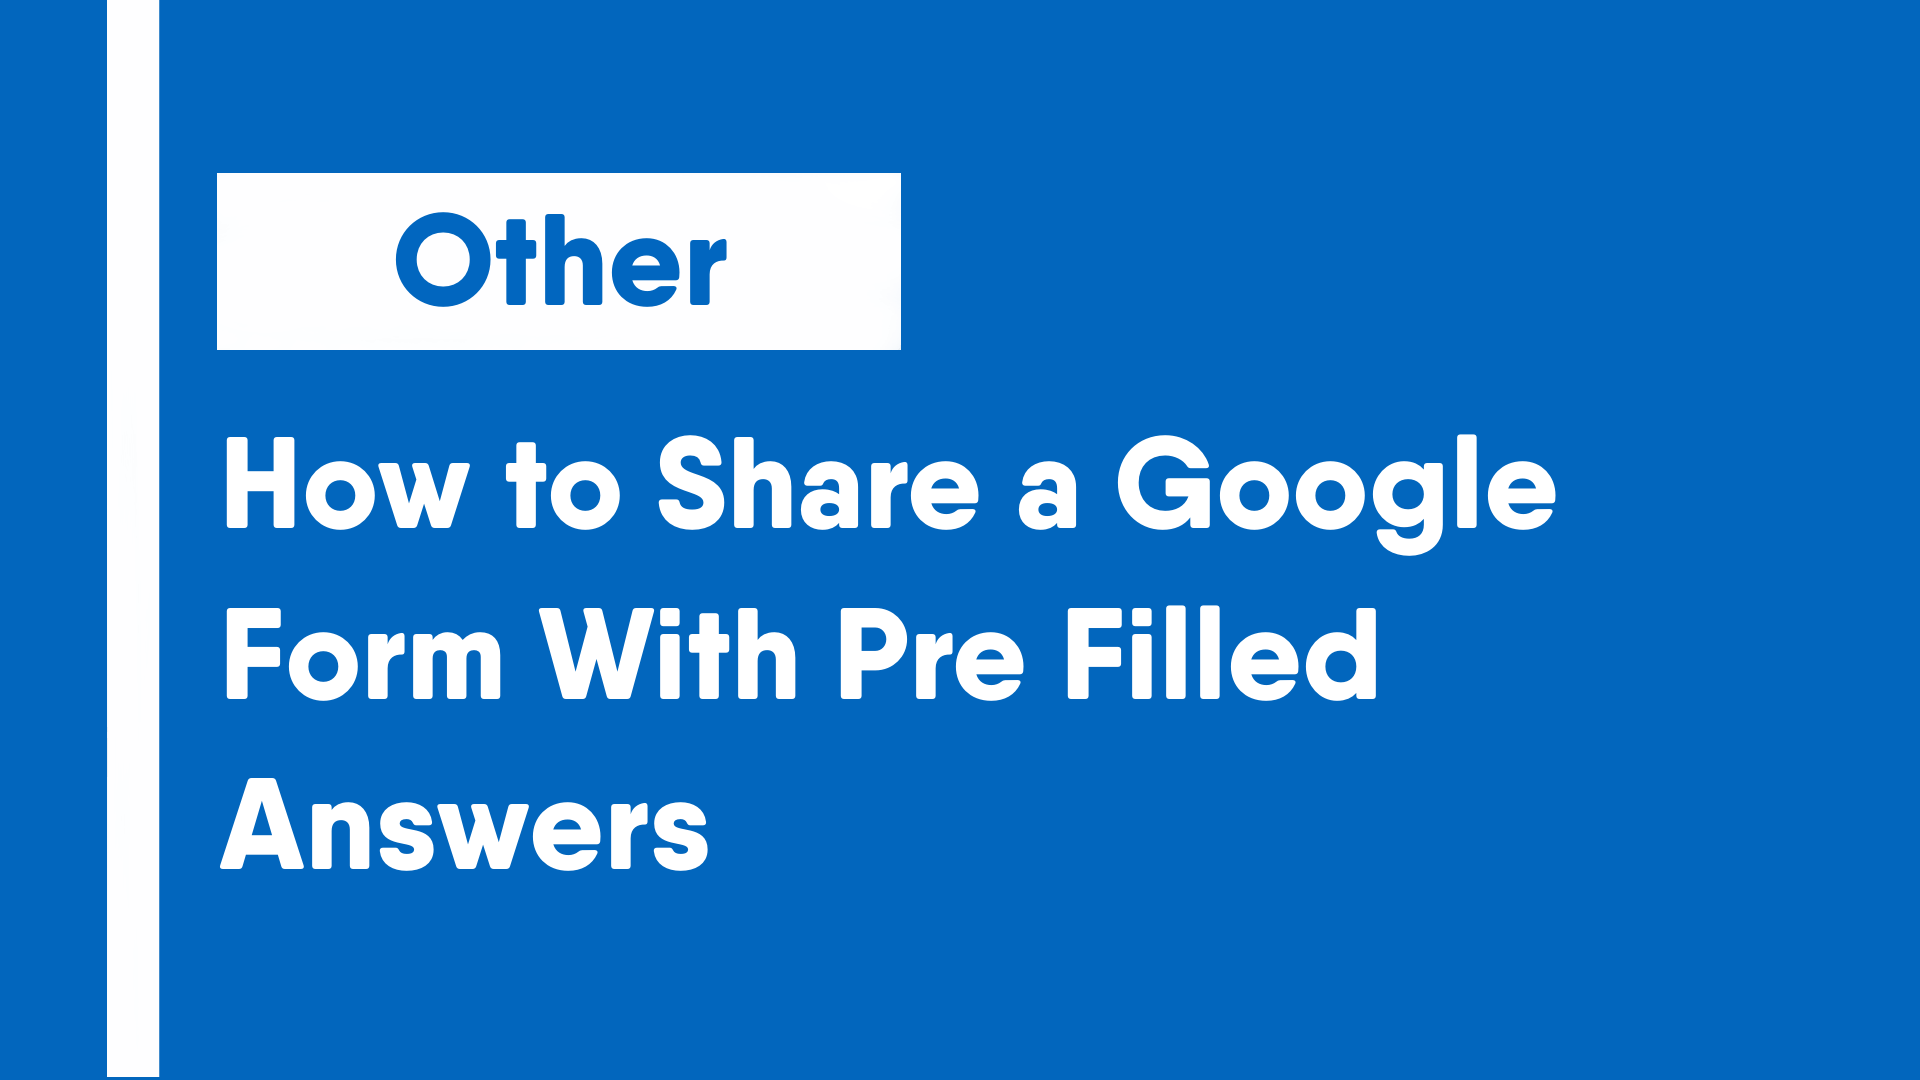 How to Share a Google Form With Pre Filled Answers